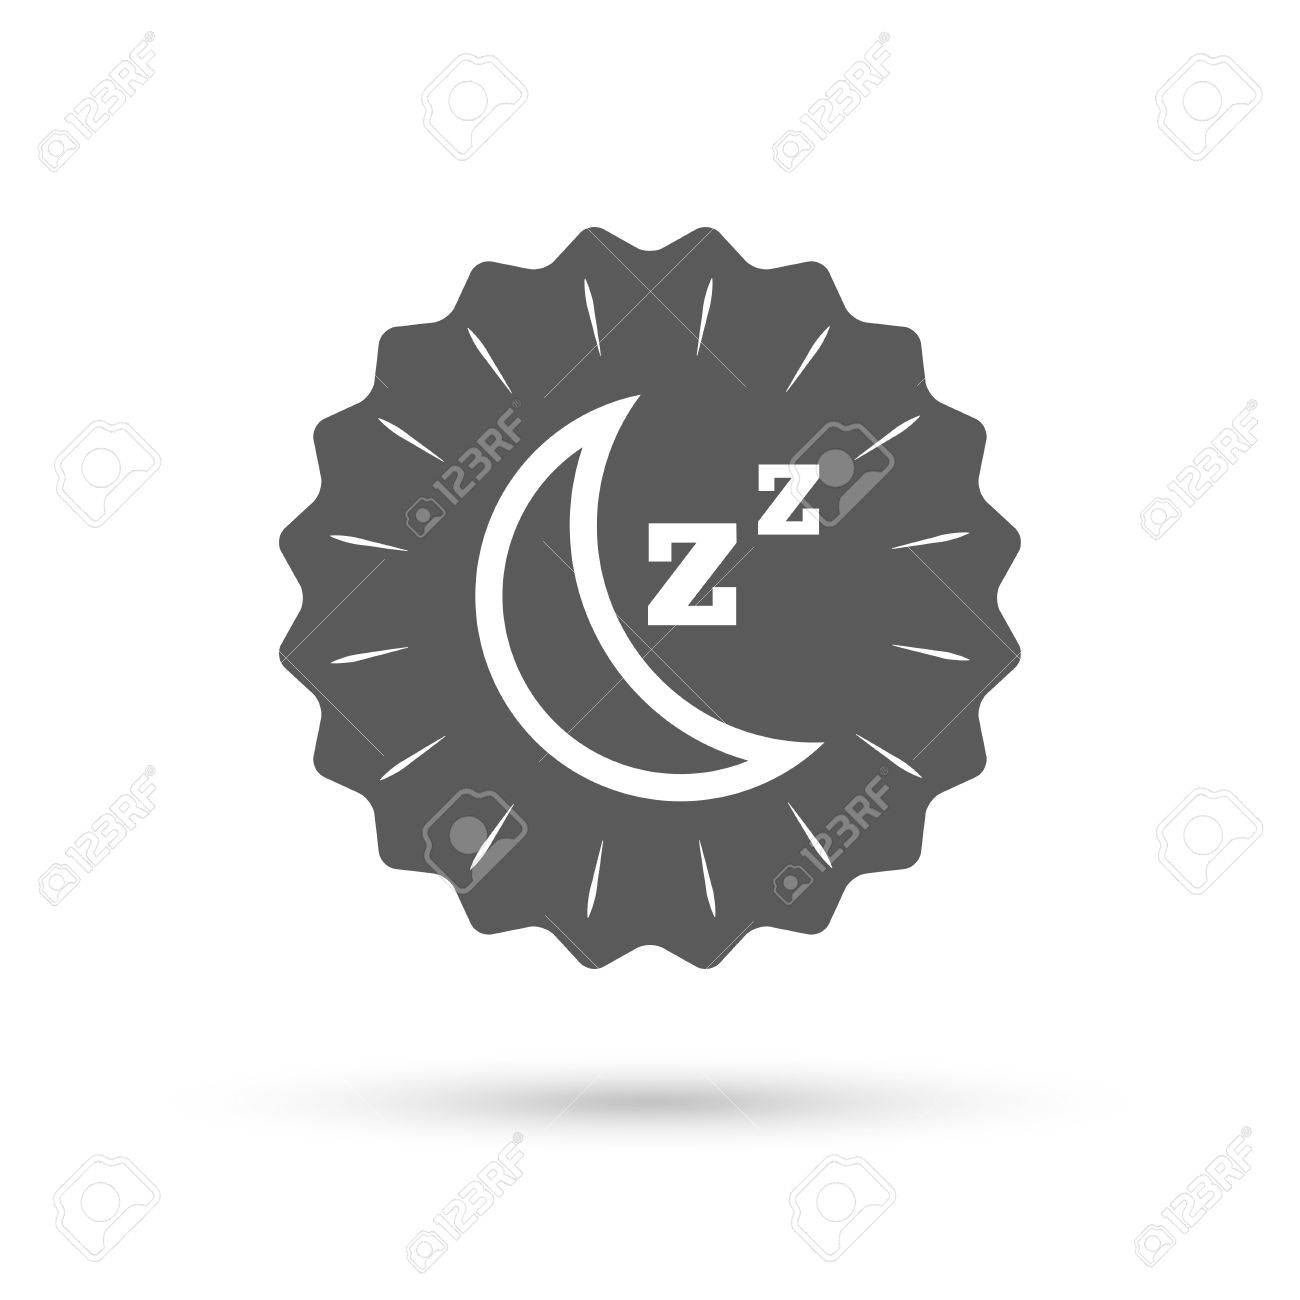 Vintage emblem medal sleep sign icon moon with zzz button vintage emblem medal sleep sign icon moon with zzz button standby classic biocorpaavc